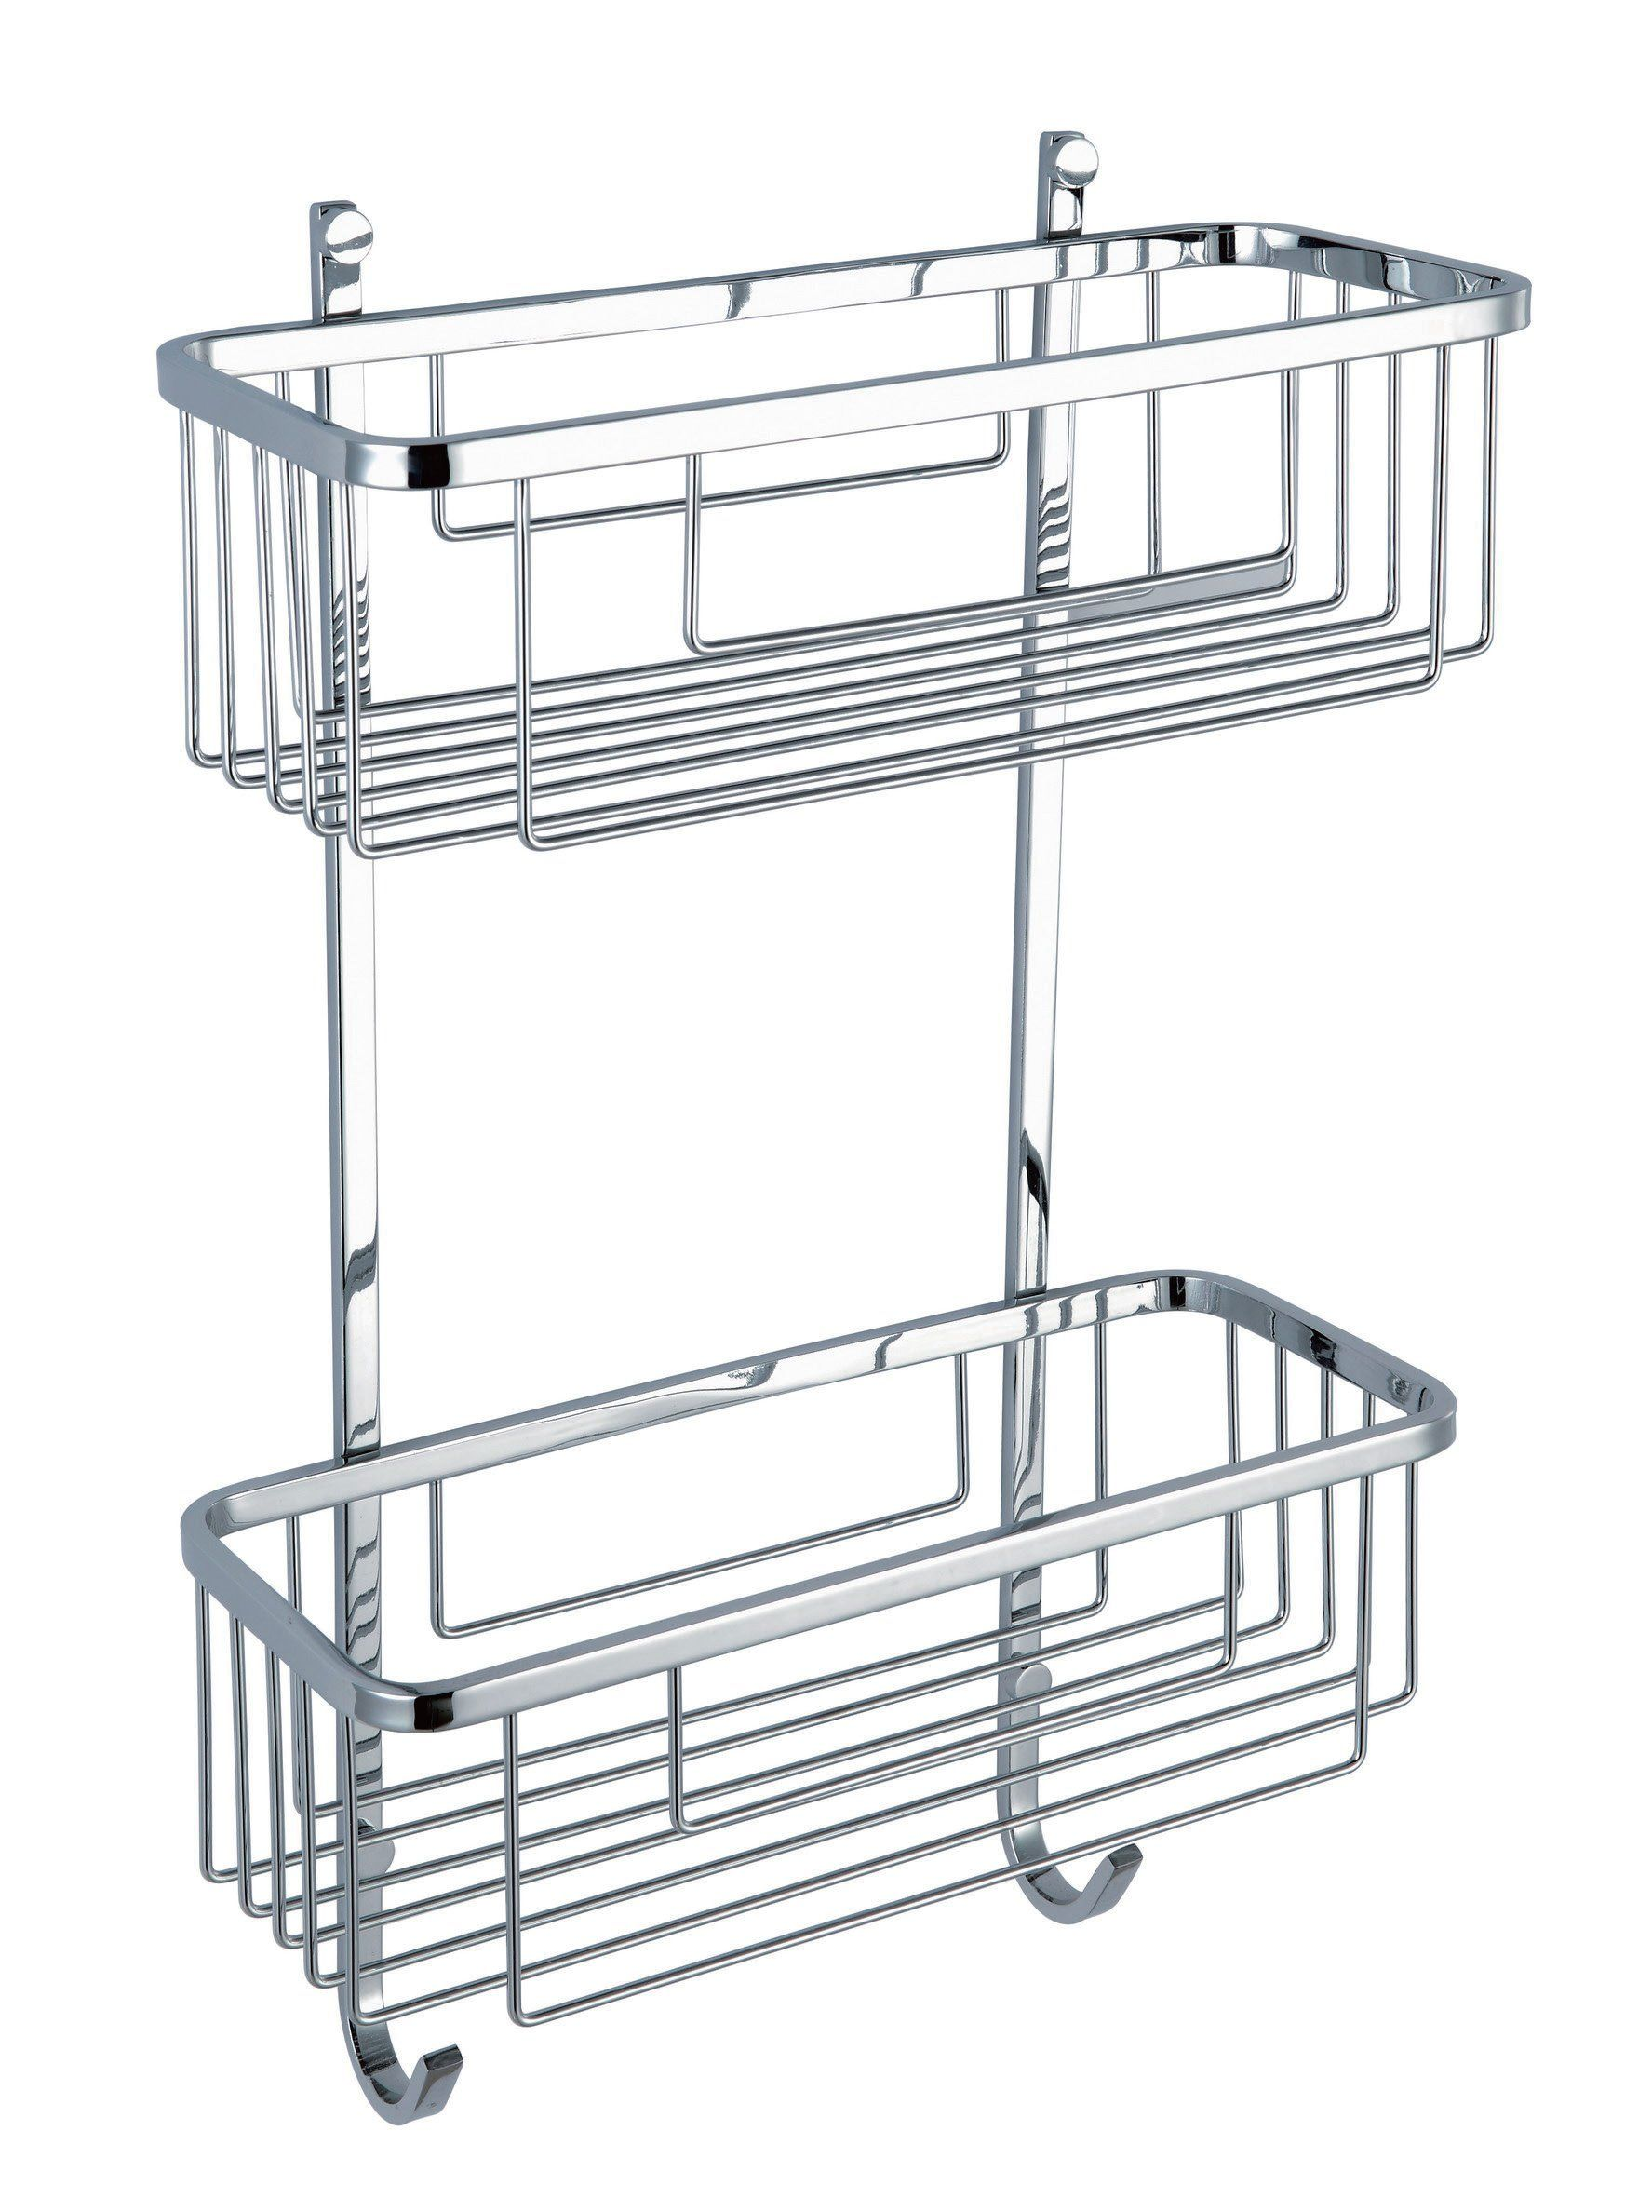 Hane 2 Tiers Stainless Steel Bathroom Shower Caddy Shelf Basket 09 121 Polished Chrome Bathroom Corner Shelf Diy Shelves Bathroom Bathroom Corner Rack